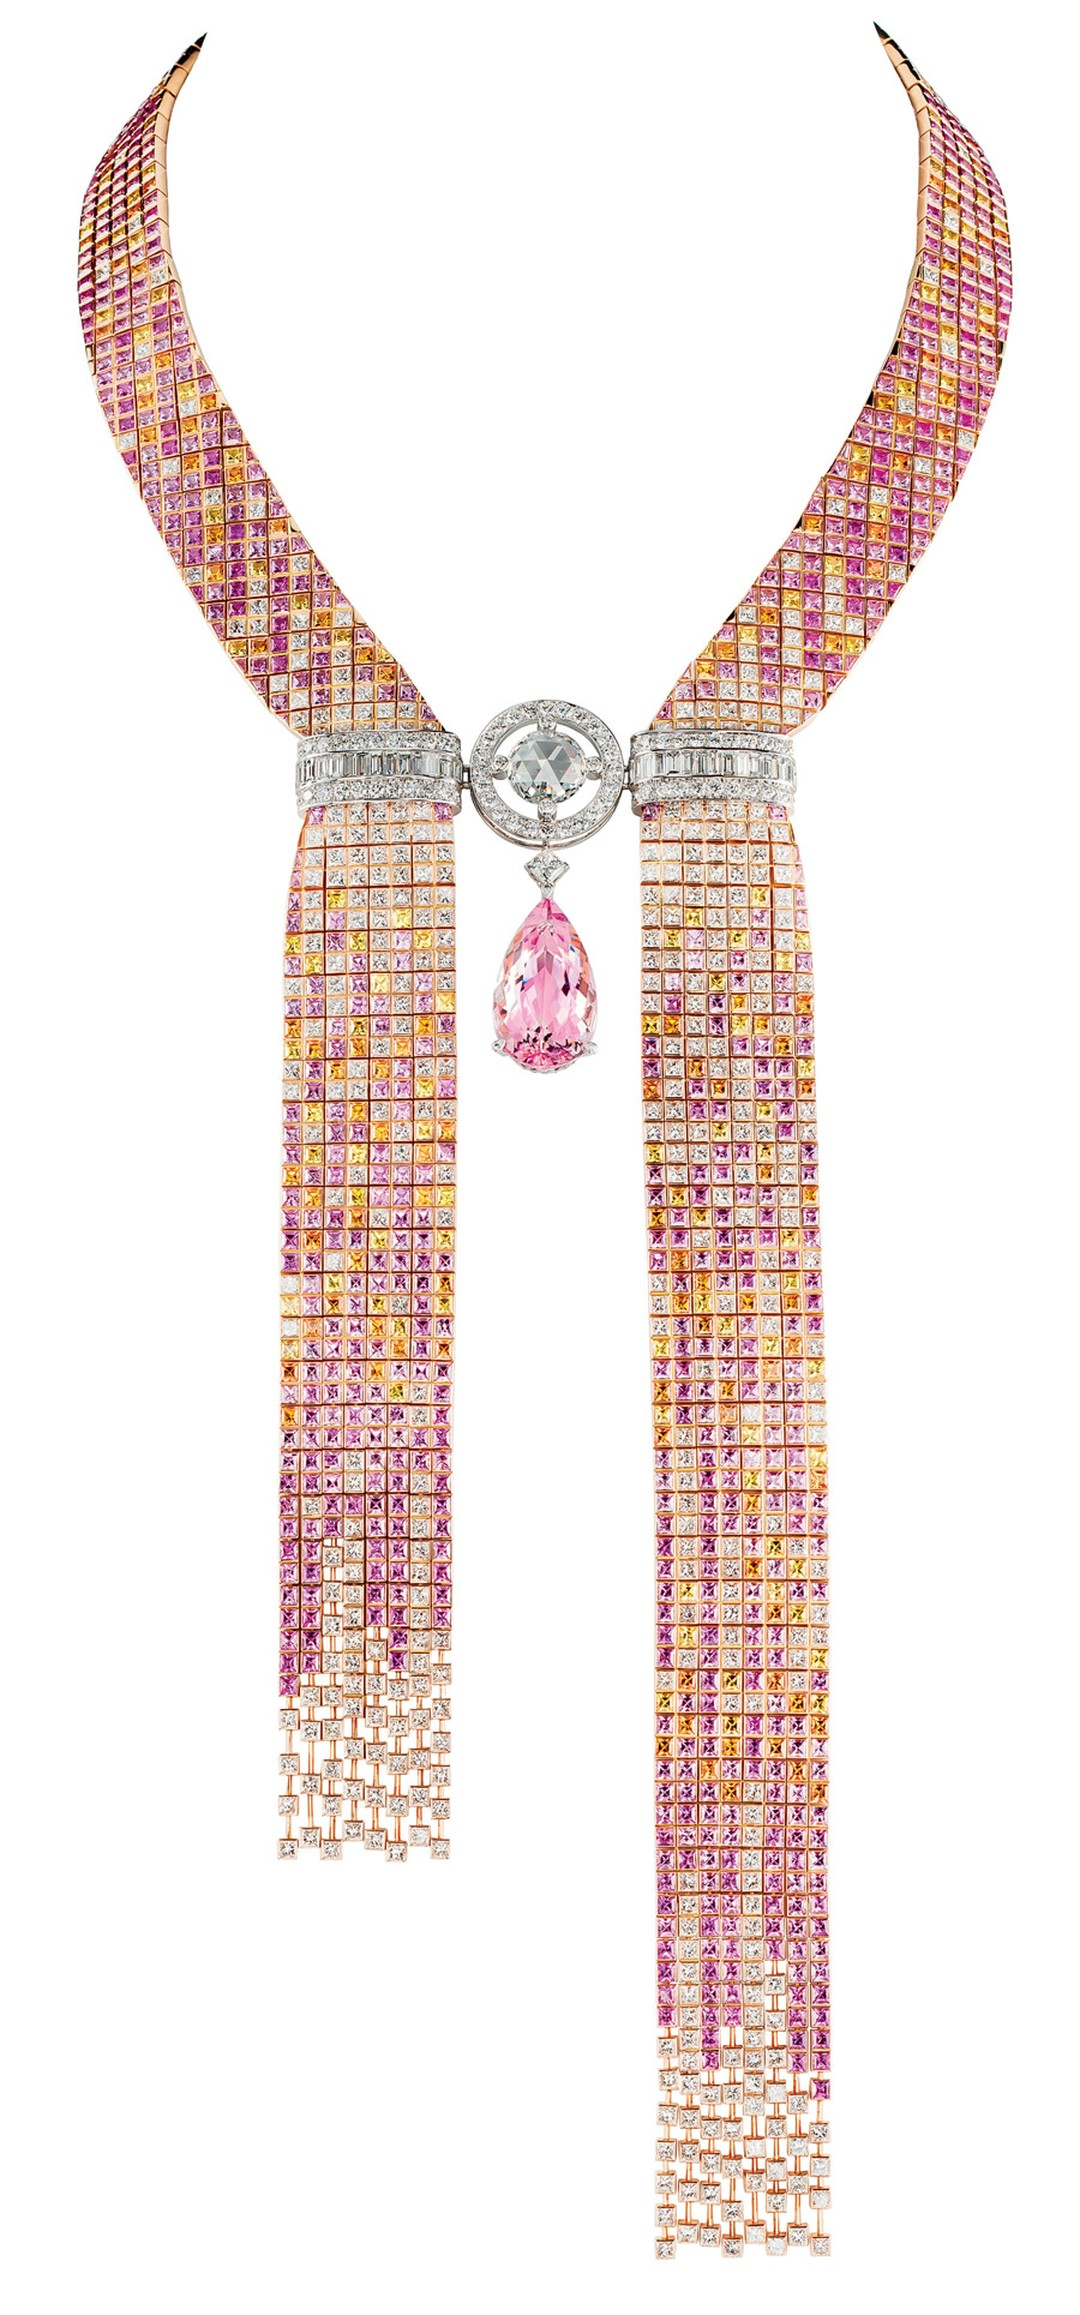 boucheron-mosaique-delilah-necklace.jpg